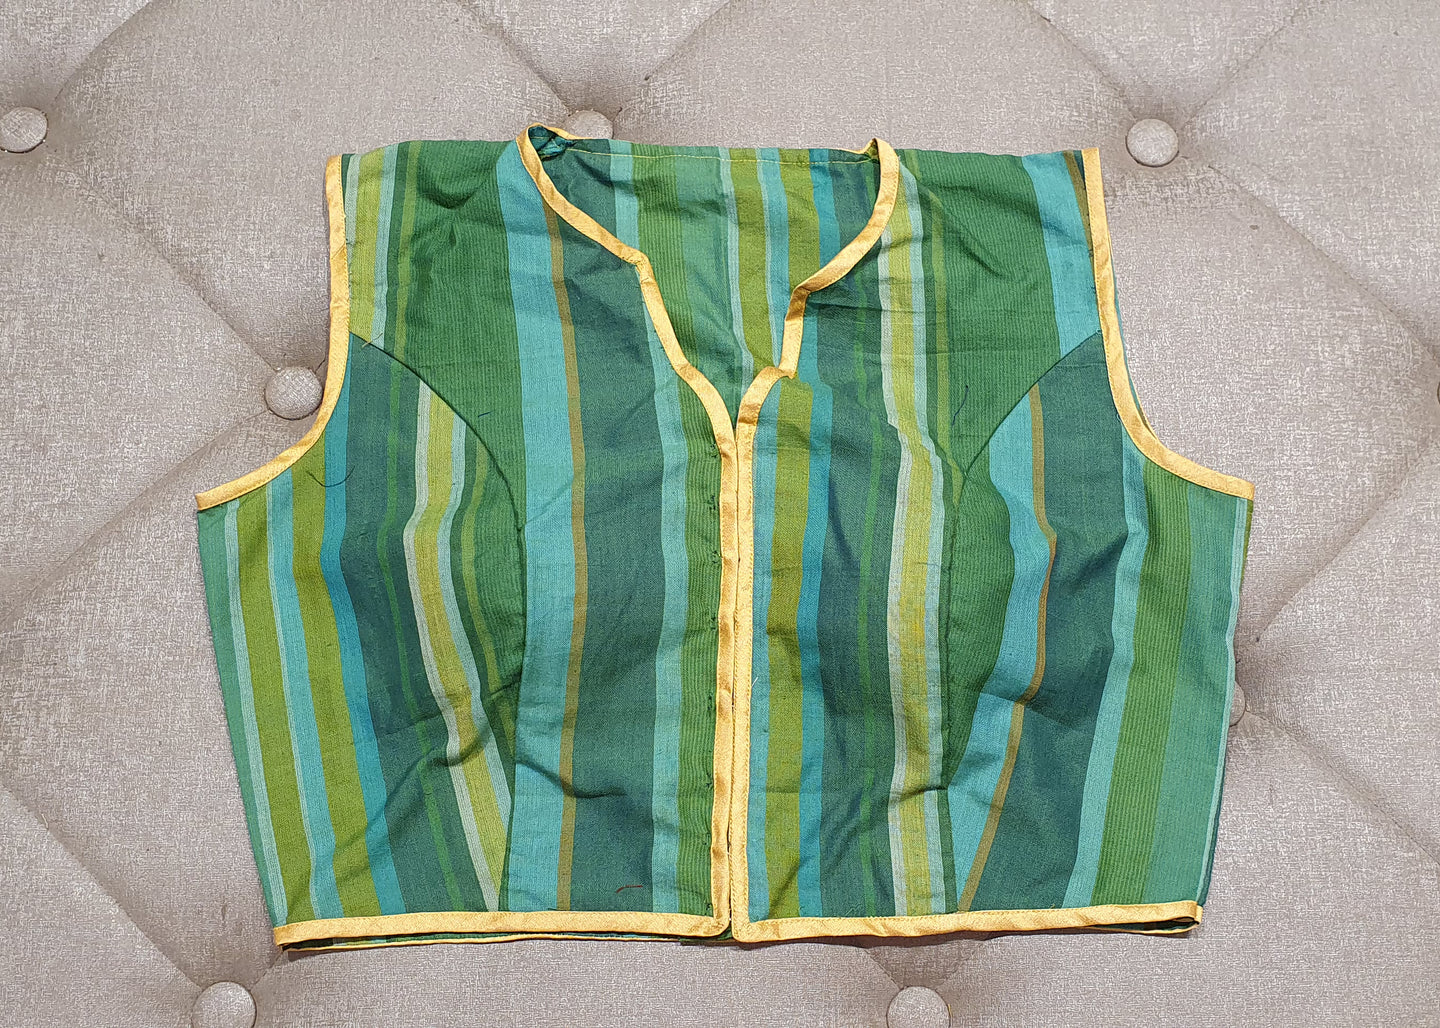 Designer Blouse with Green Shade Stripes - Front Side